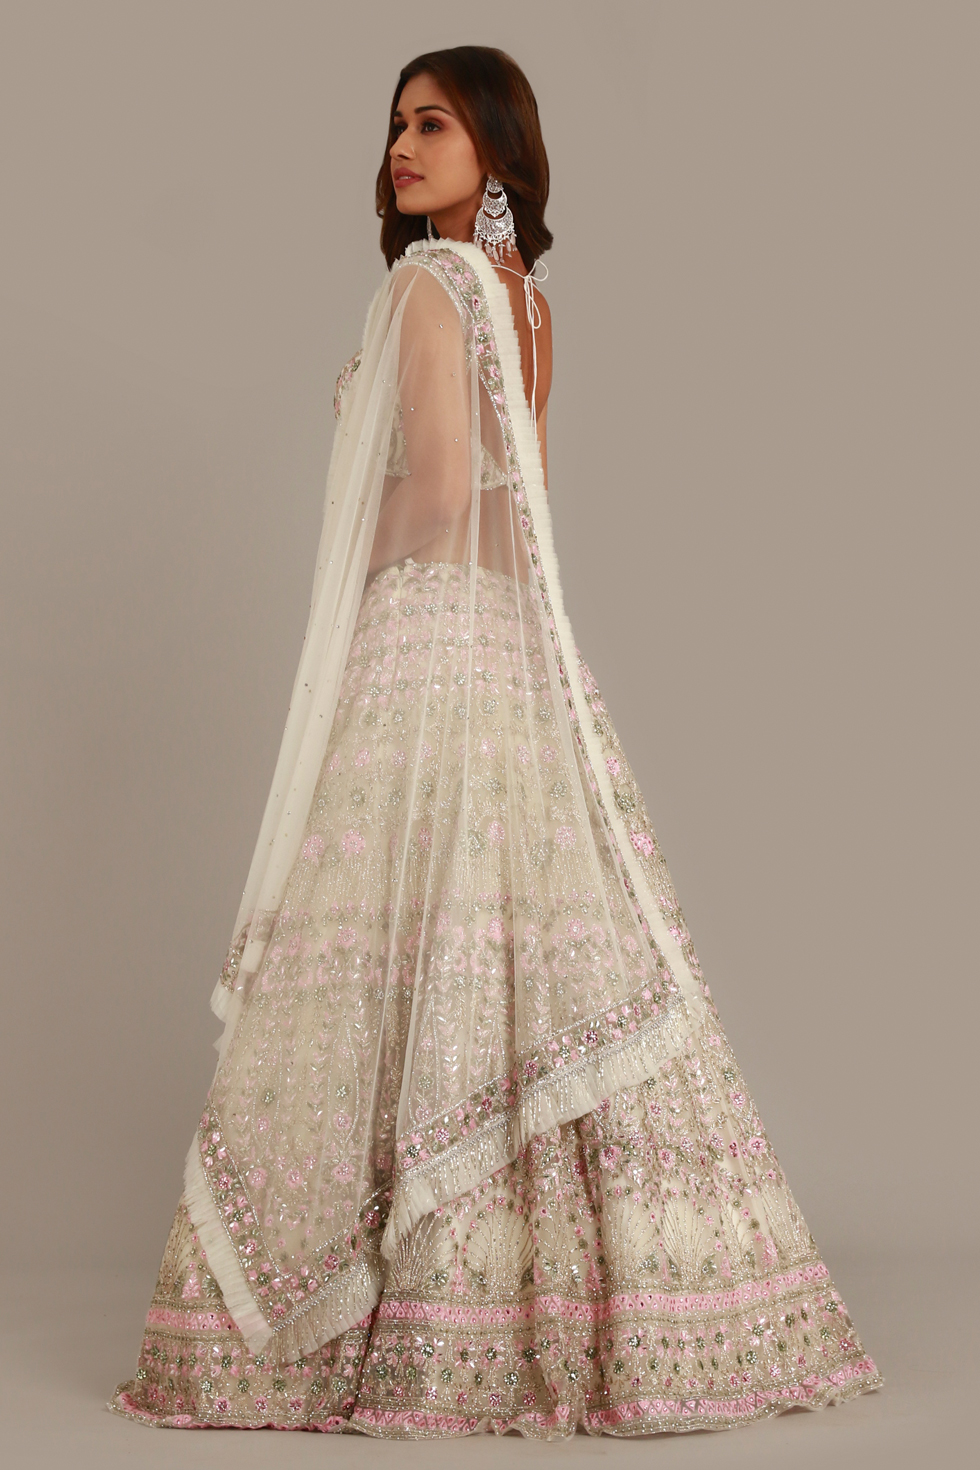 Ivory white lehenga set with contrast multi coloured embroidery and matching frill dupatta with silver embellishments